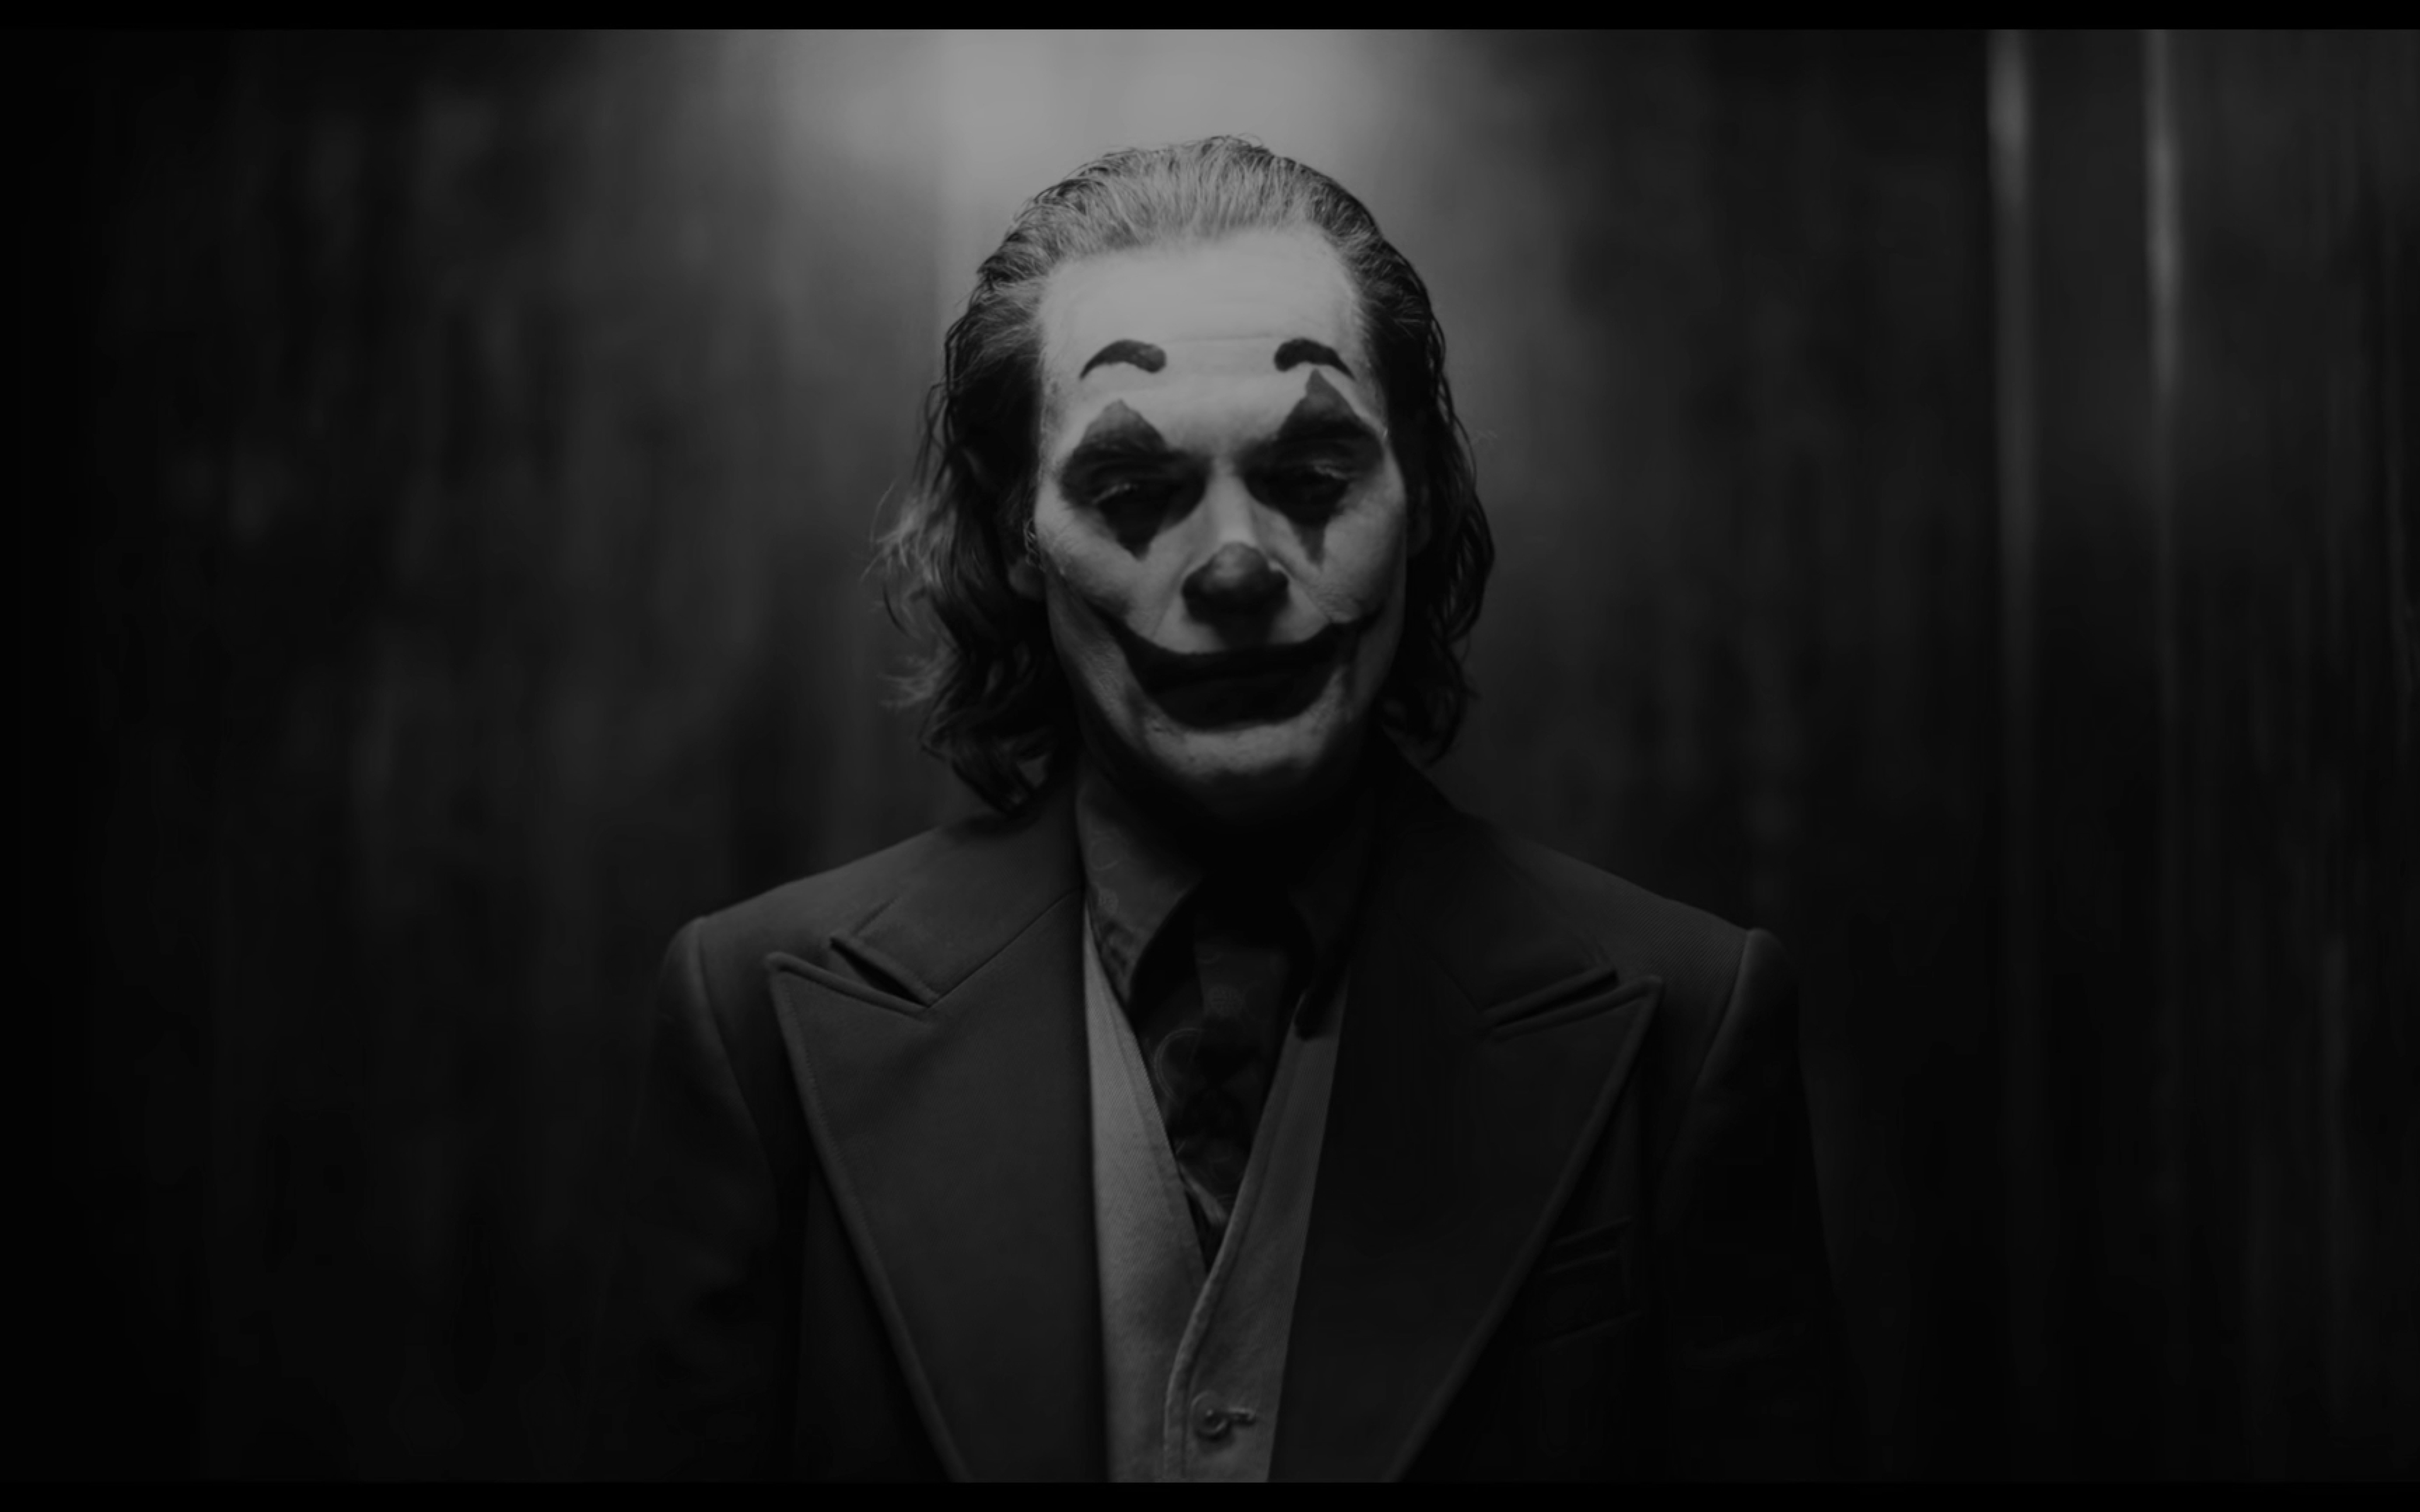 3840x2400 Joaquin Phoenix As Joker Monochrome 4K 3840x2400 ...